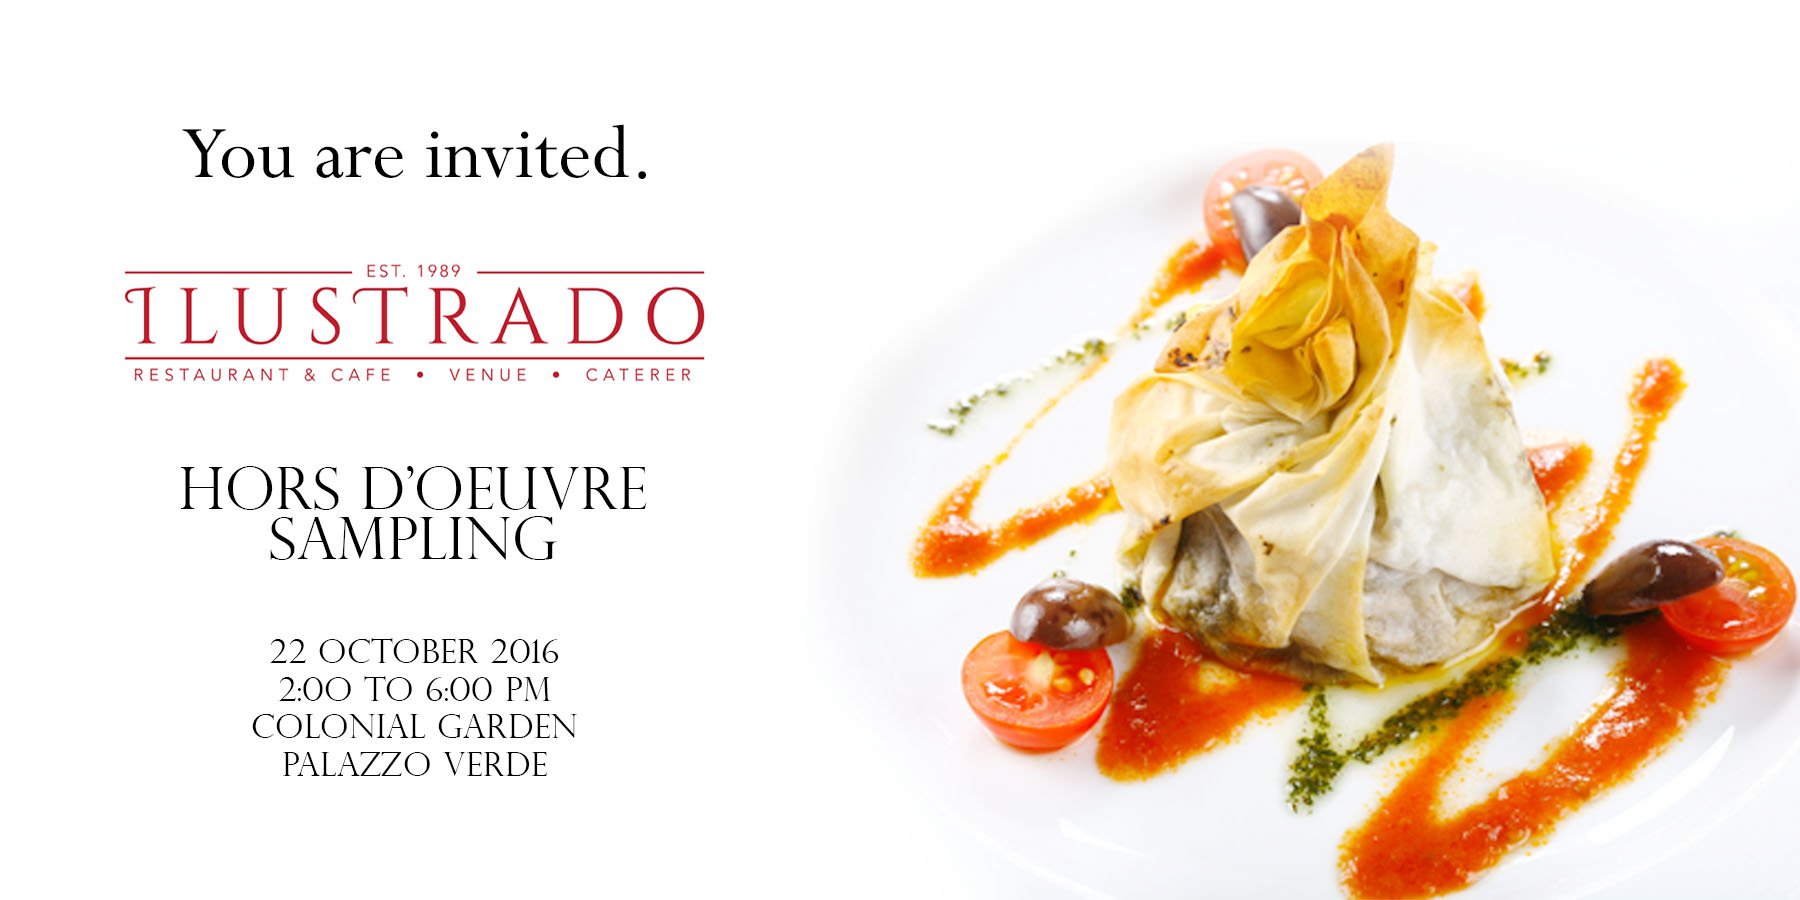 Ilustrado Catering and Palazzo Verde pairs up for an exciting treat!